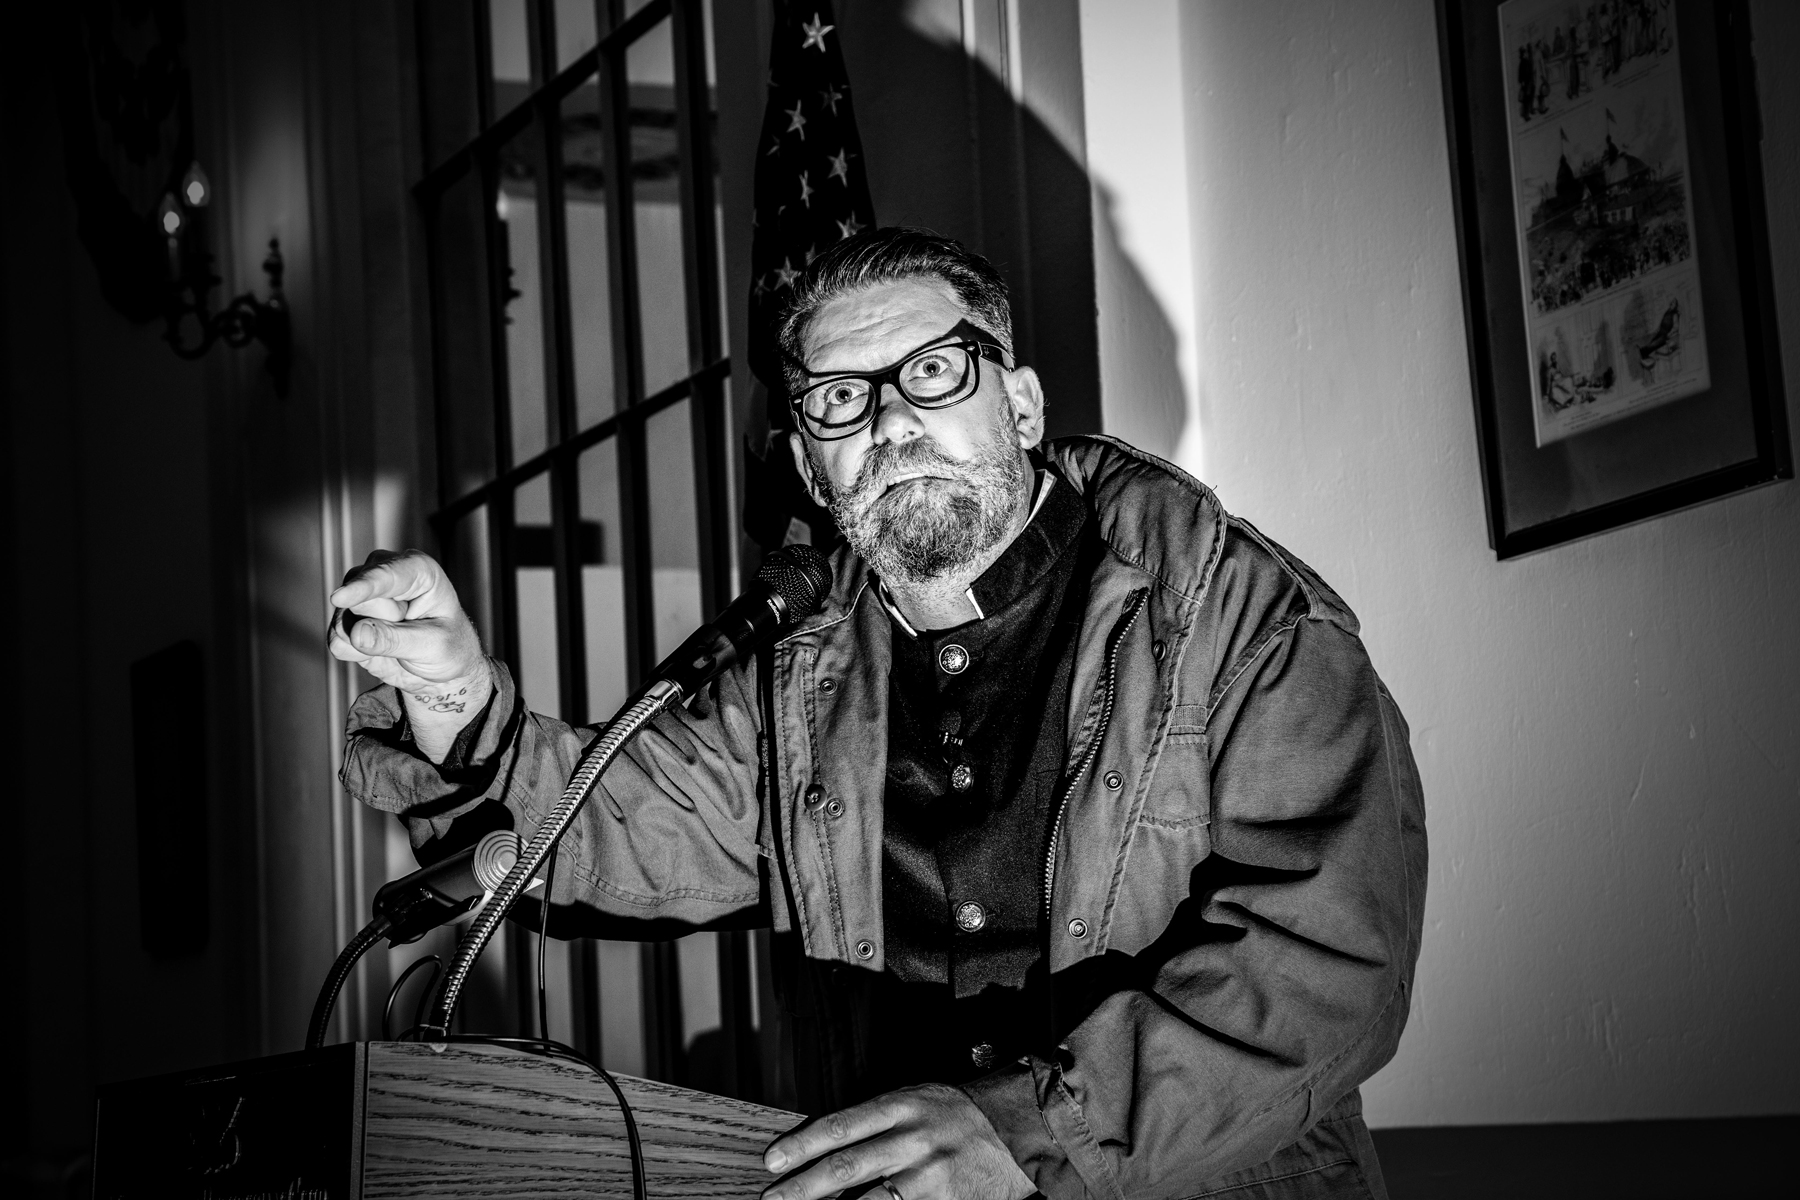 Metropolitan Republican Club of New York City invited Gavin McInnes, who founded a far-right group which regularly engages in street brawls and violence, to gave a lecture on Friday evening, October 13, 2018 in NYC, where he will